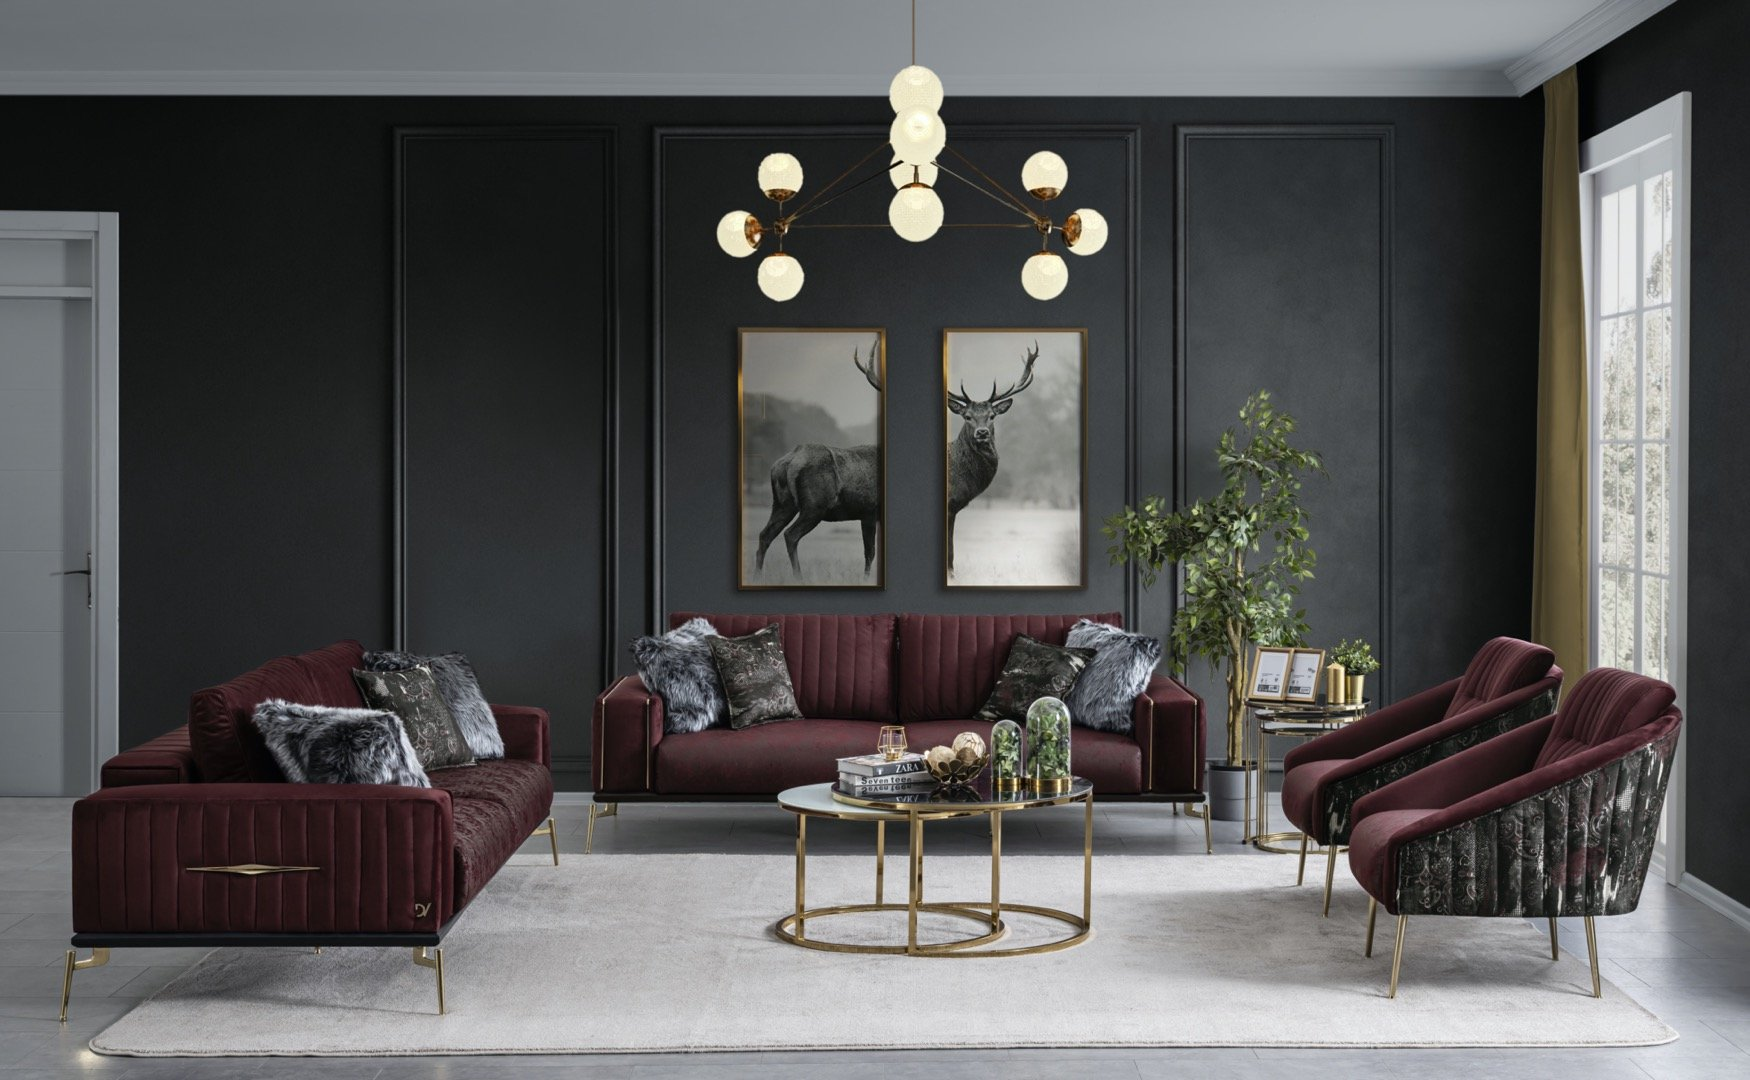 8 Interior Design Trends for 2021